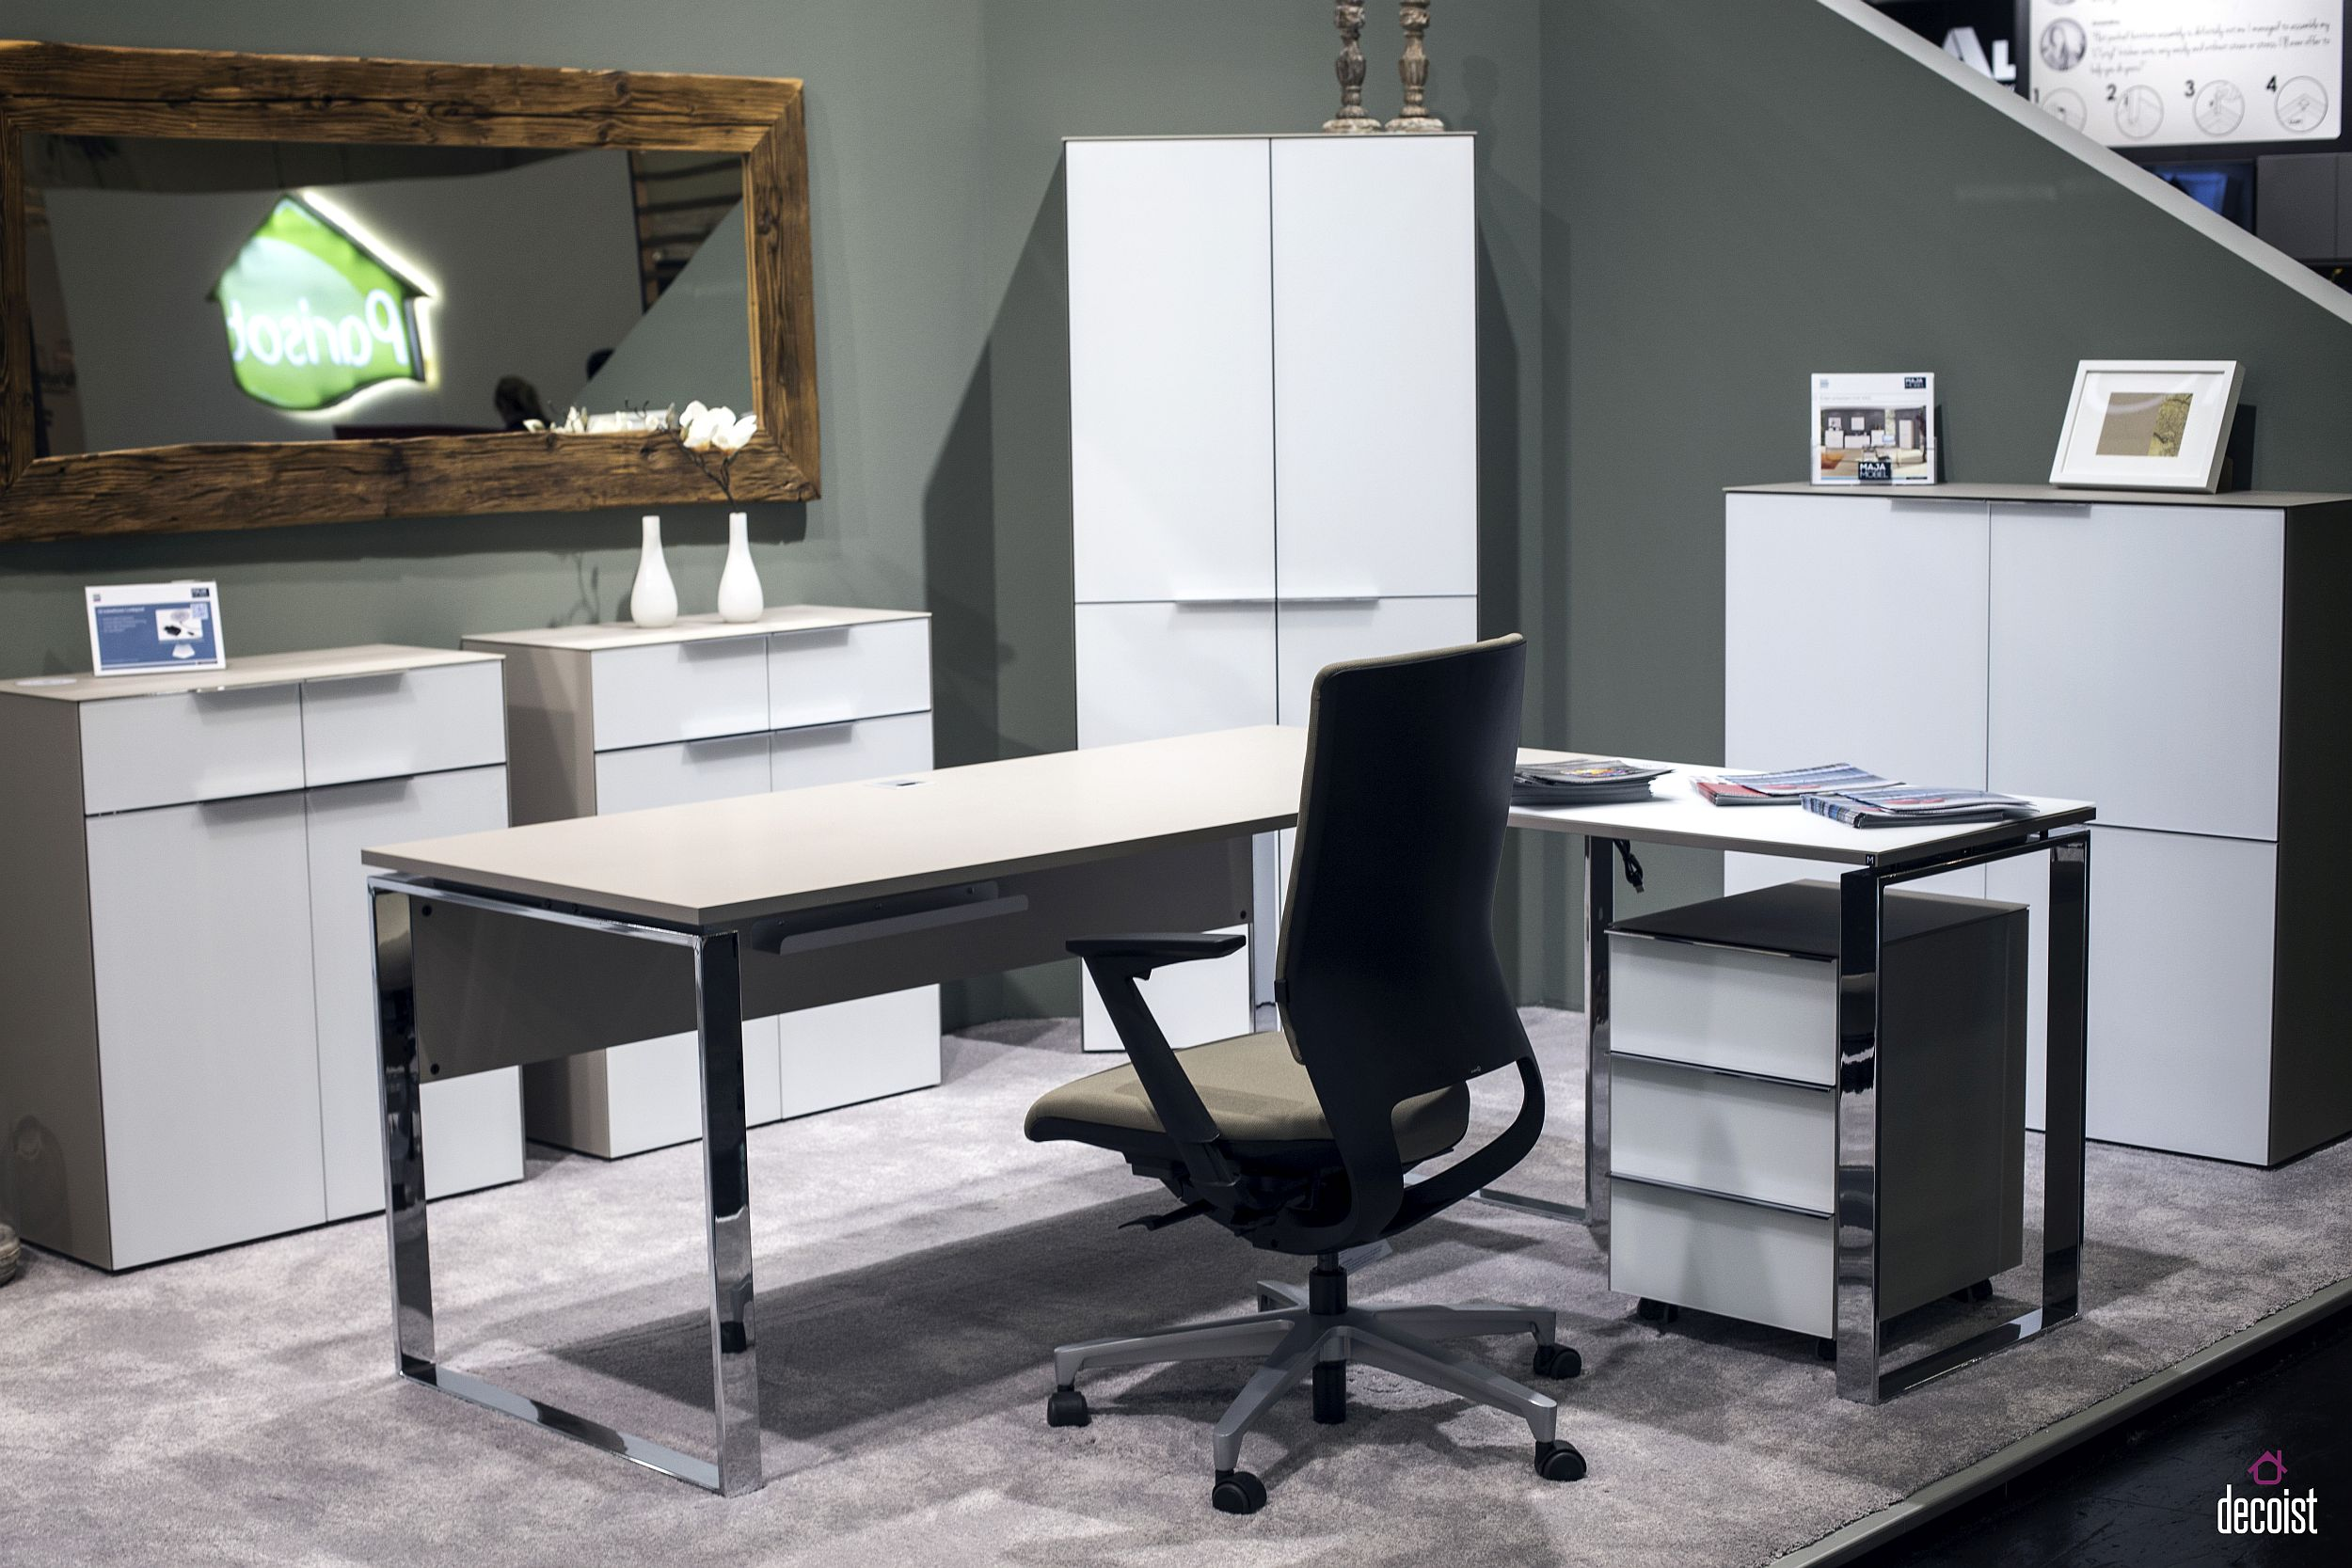 SET+ Collection of Office decor from Maja Mobel combines angular modularity with modern style